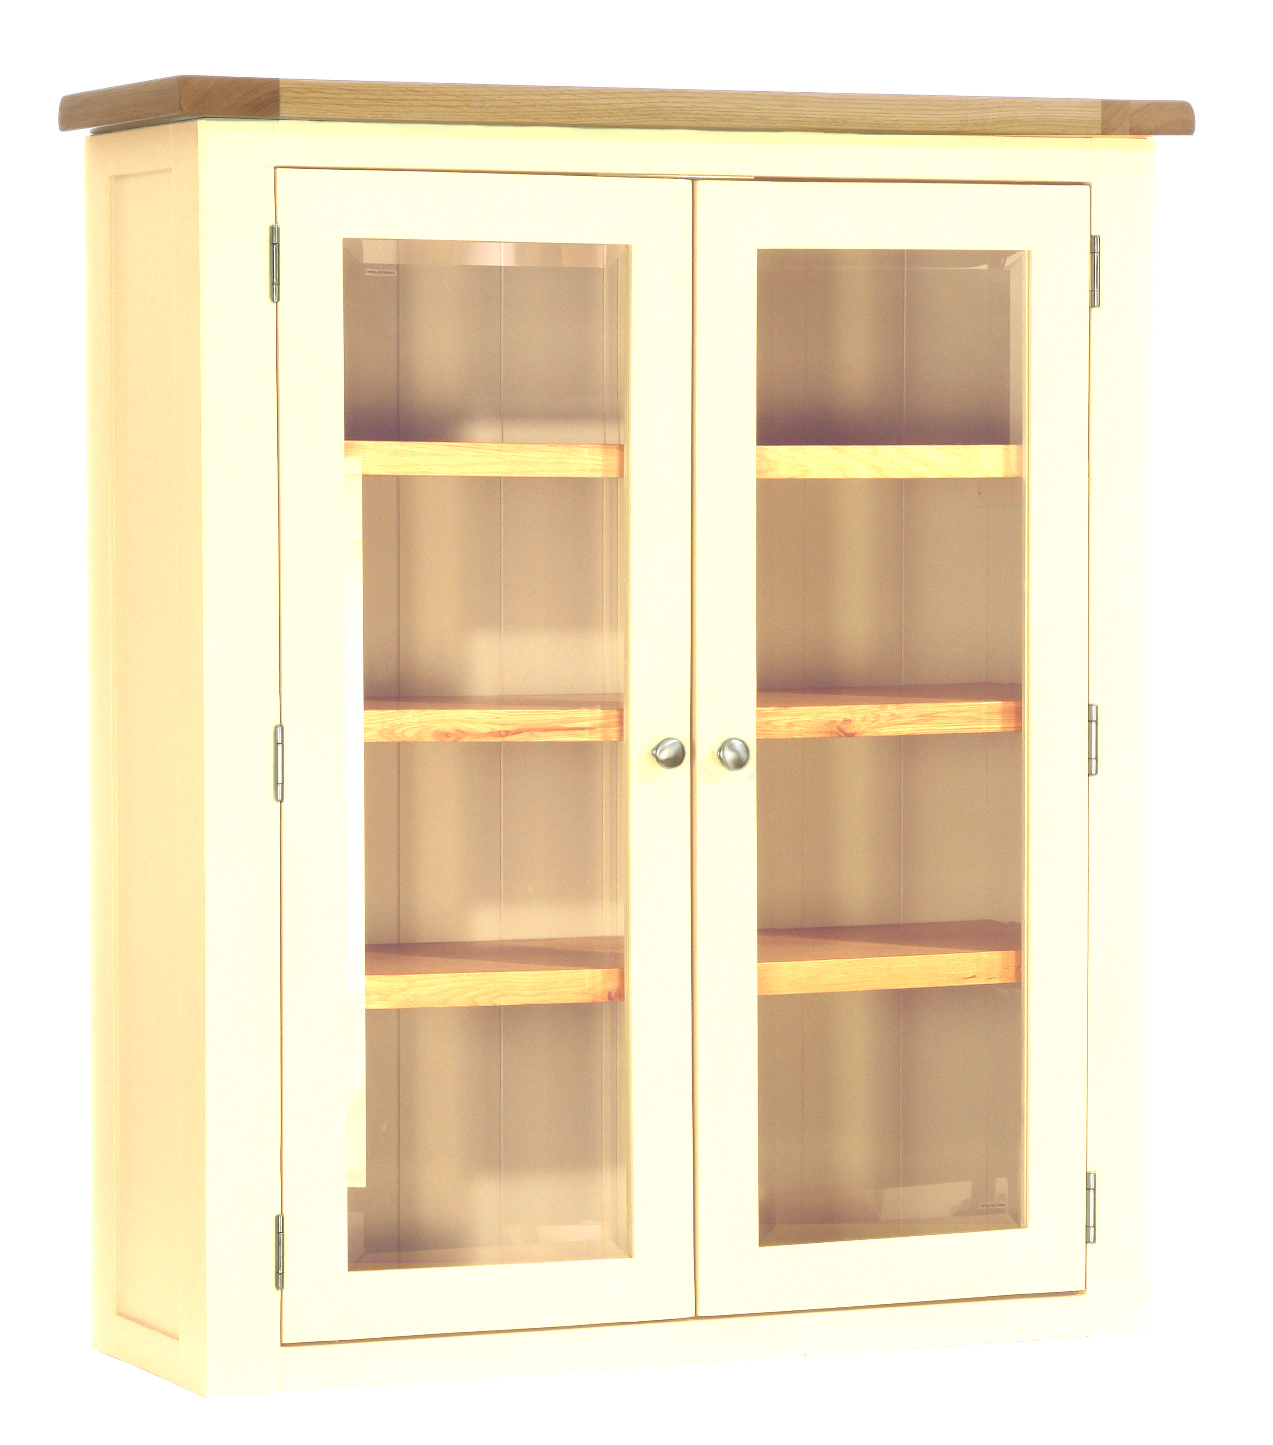 Glazed 2 Door Dresser Rack  Colour-Ivory  w 100 x d 35 x h 115 cm  € 580 ( 40% Off - NOW € 348 )  Product Code: CANB118H